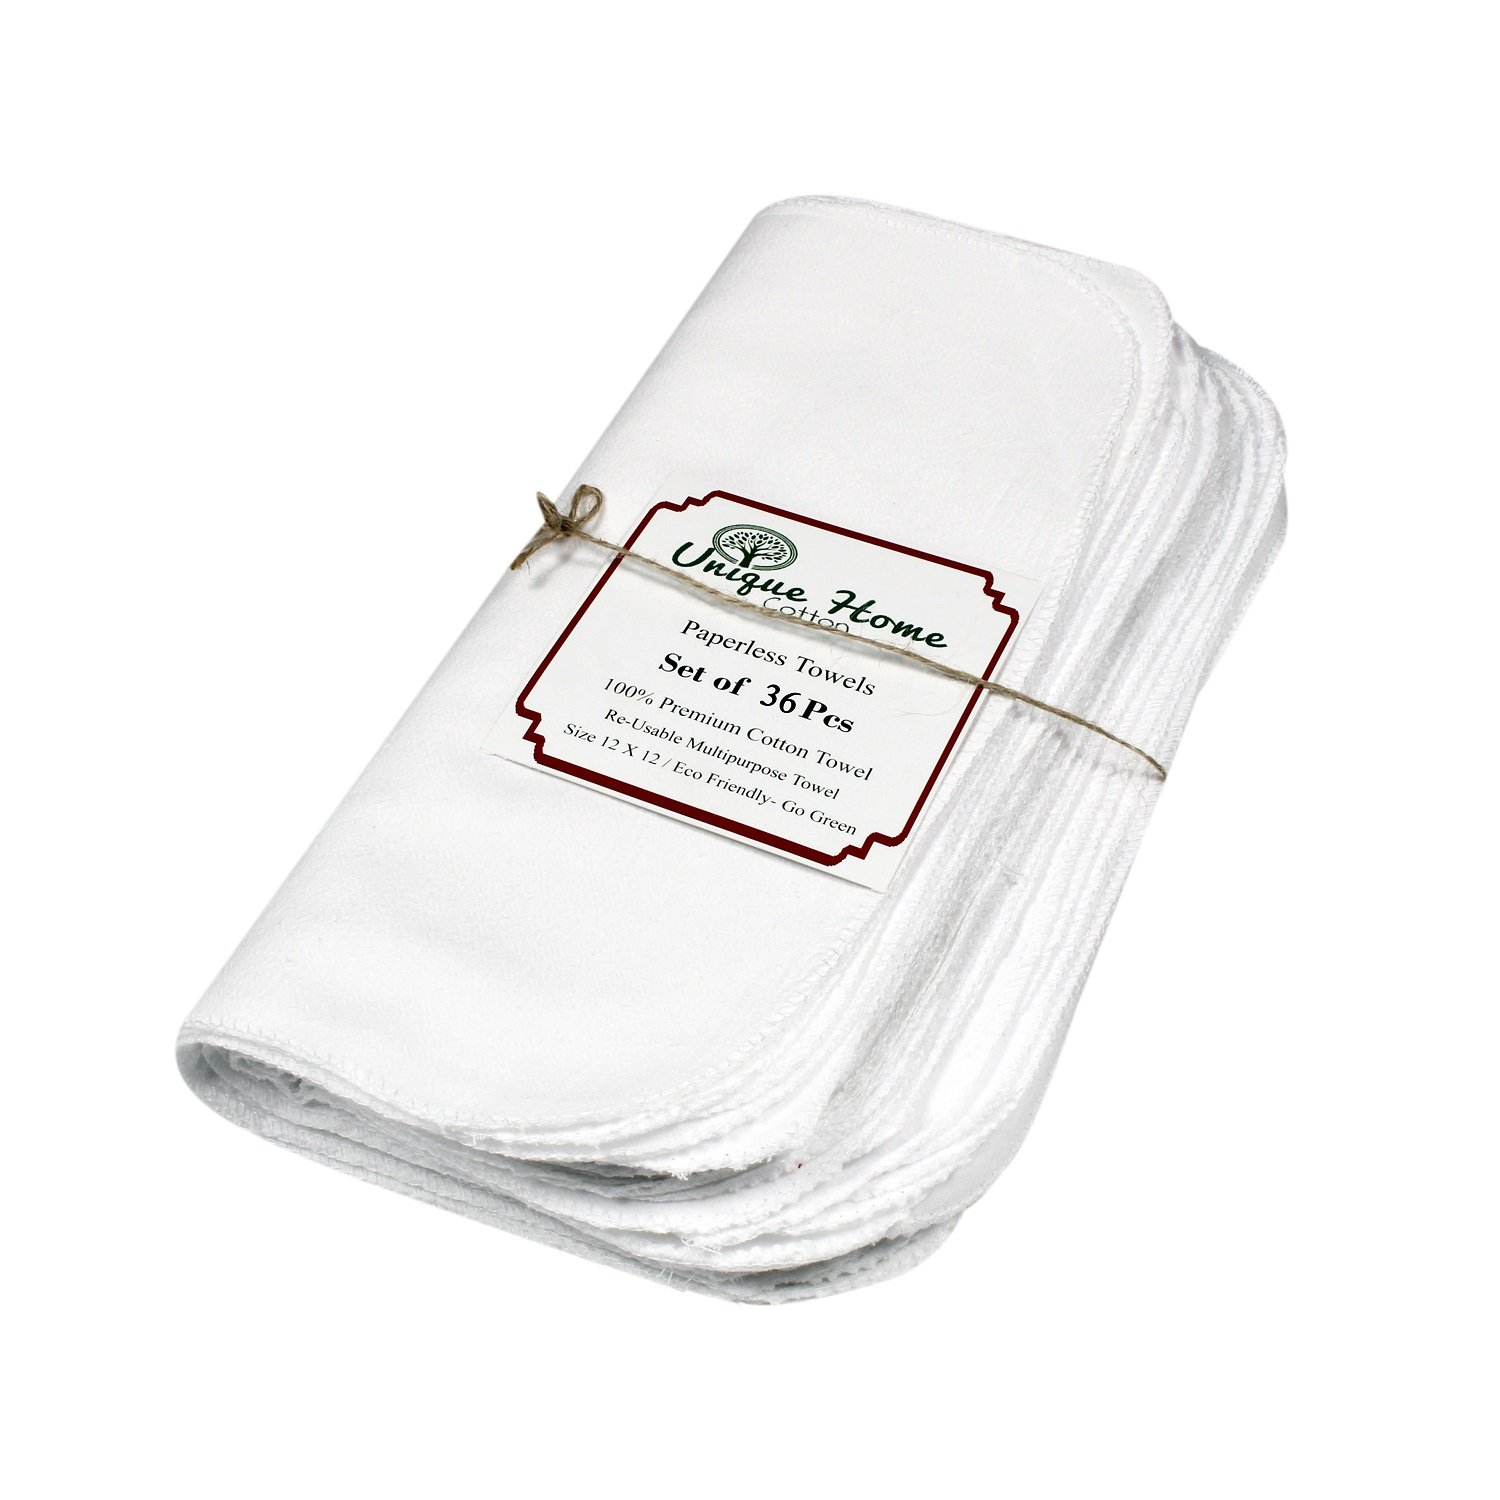 100% Premium Cotton Re-Usable Paperless Towels - White Pack of 36 pcs (12 x 12) inches. Easy wash and quick dry. Alternate to paper towels. multi-purpose towel.